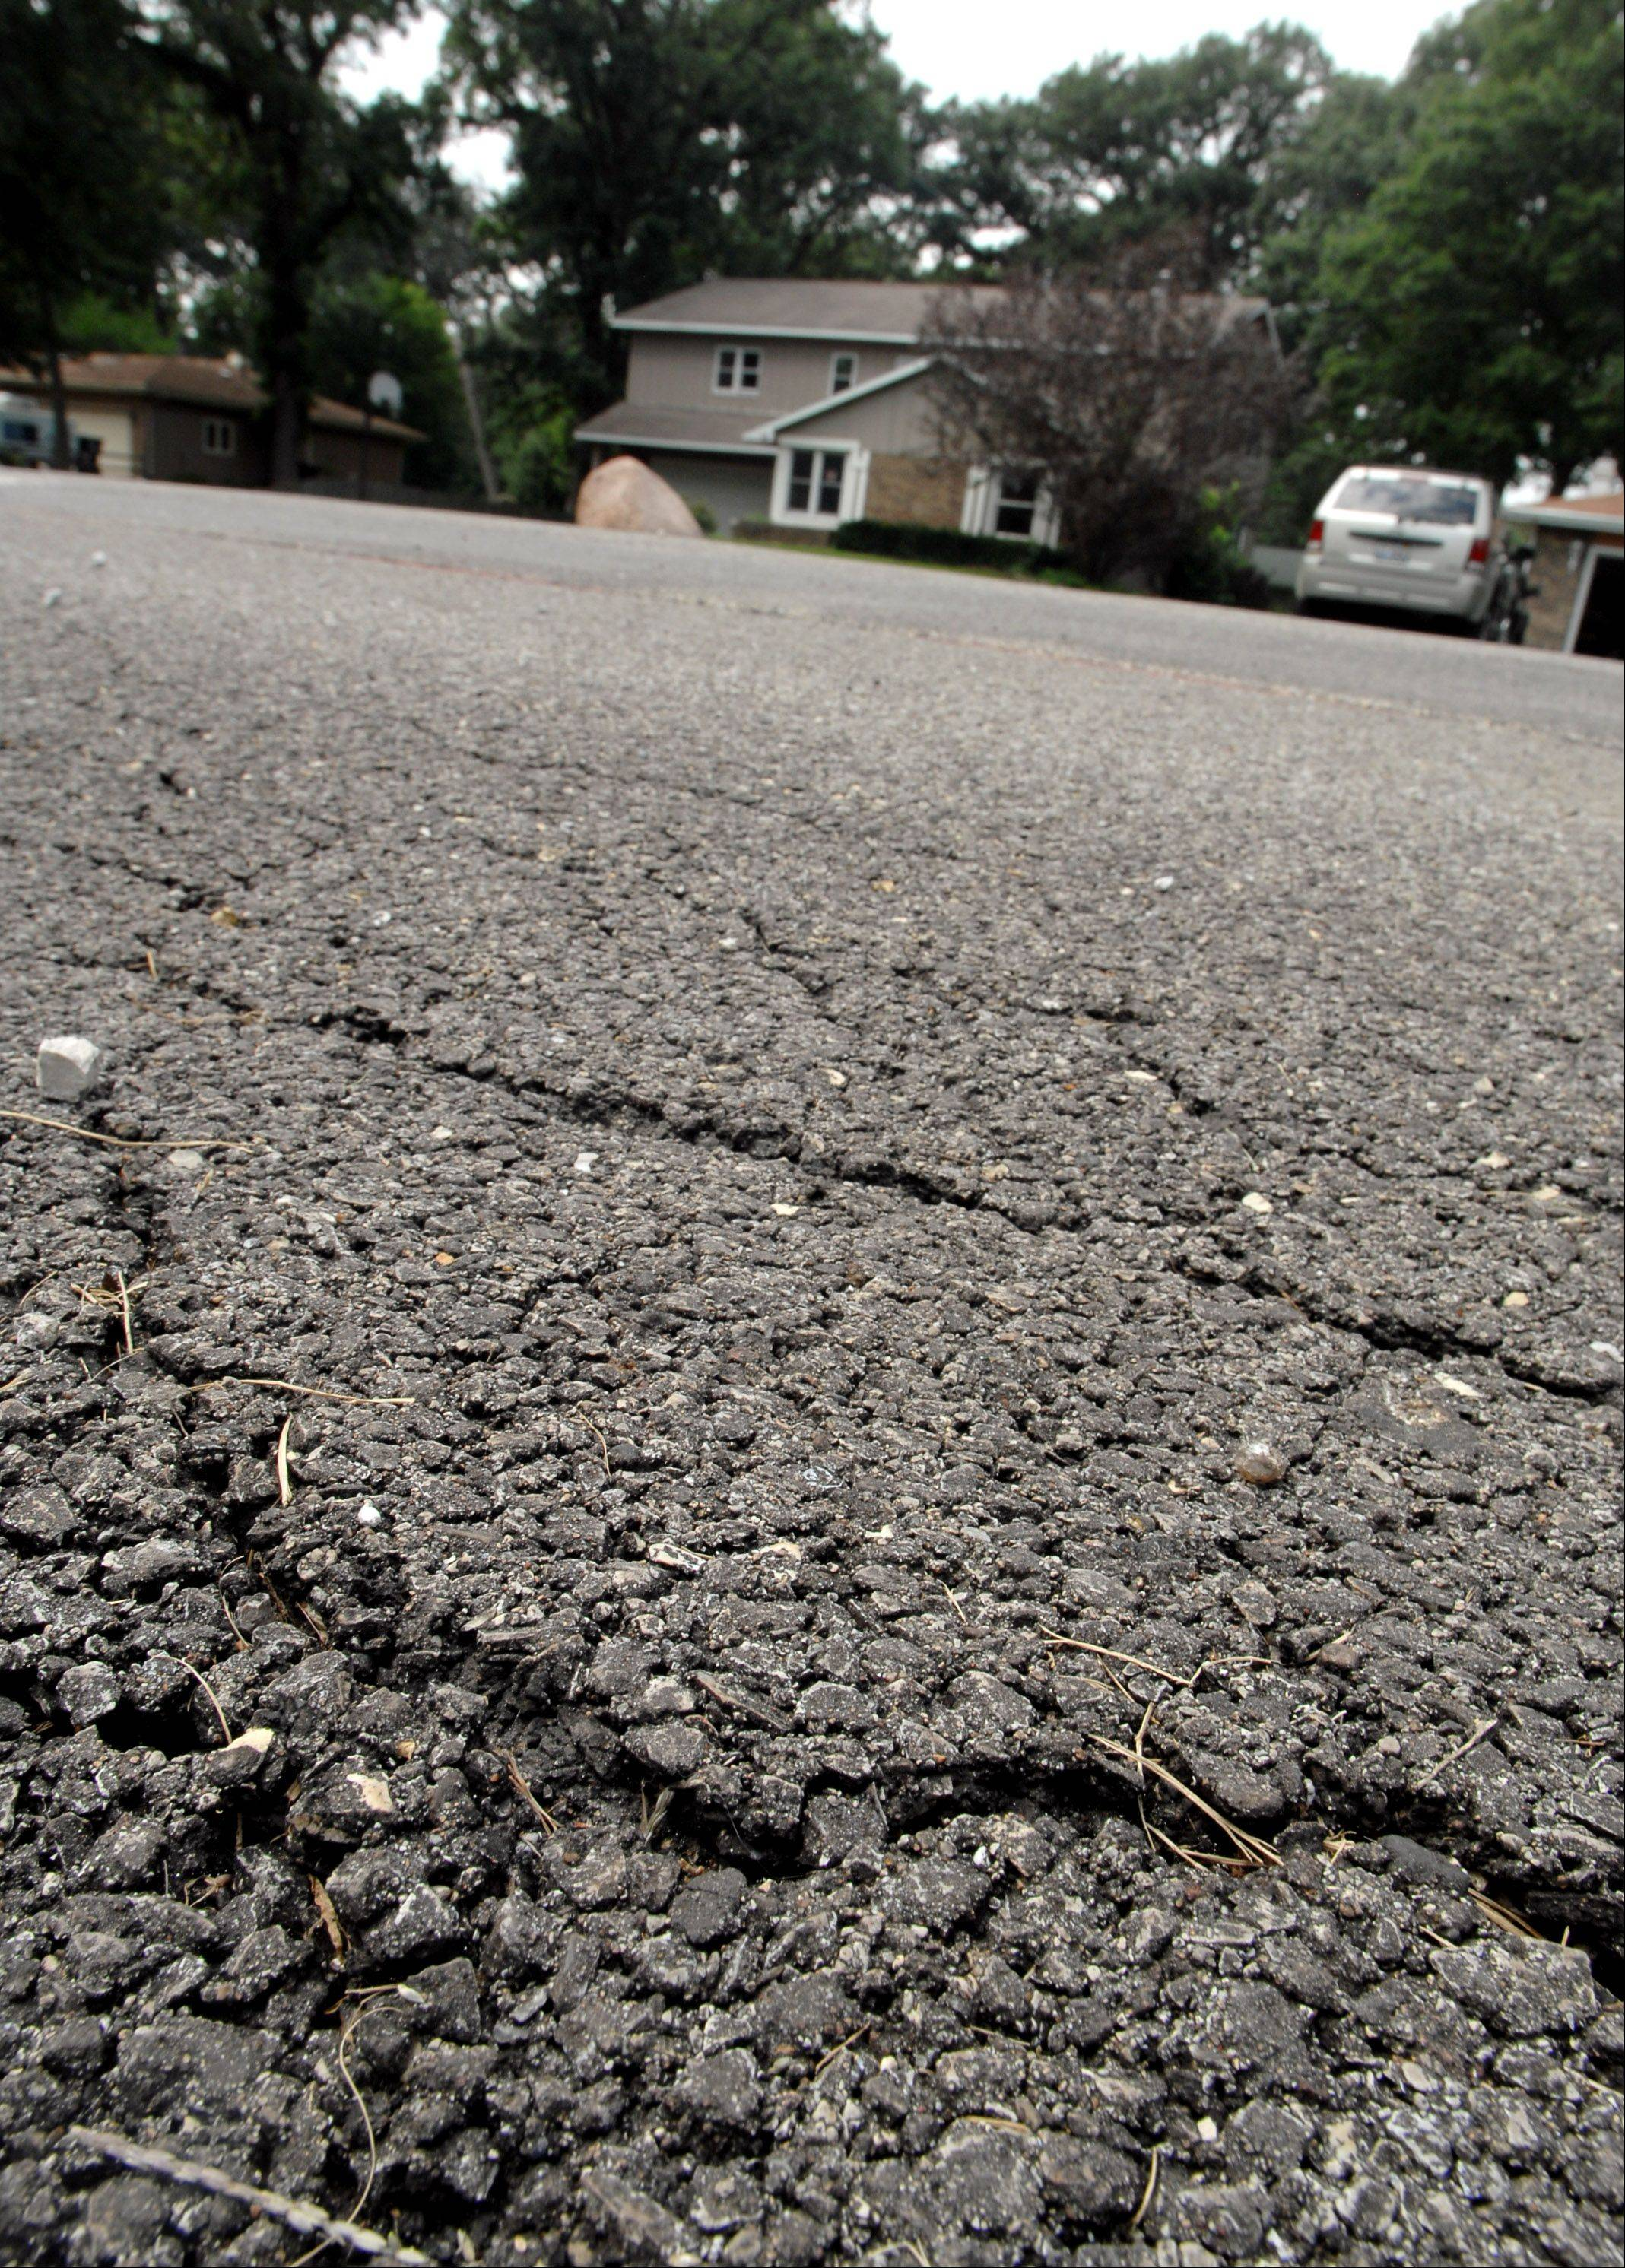 Homeowners near Port Barrington are complaining that shoddy roadwork quickly deteriorated into sunken and cracked pavement on their Geraldine Lane dead-end street and are pressuring Wauconda Township officials to have the work redone.